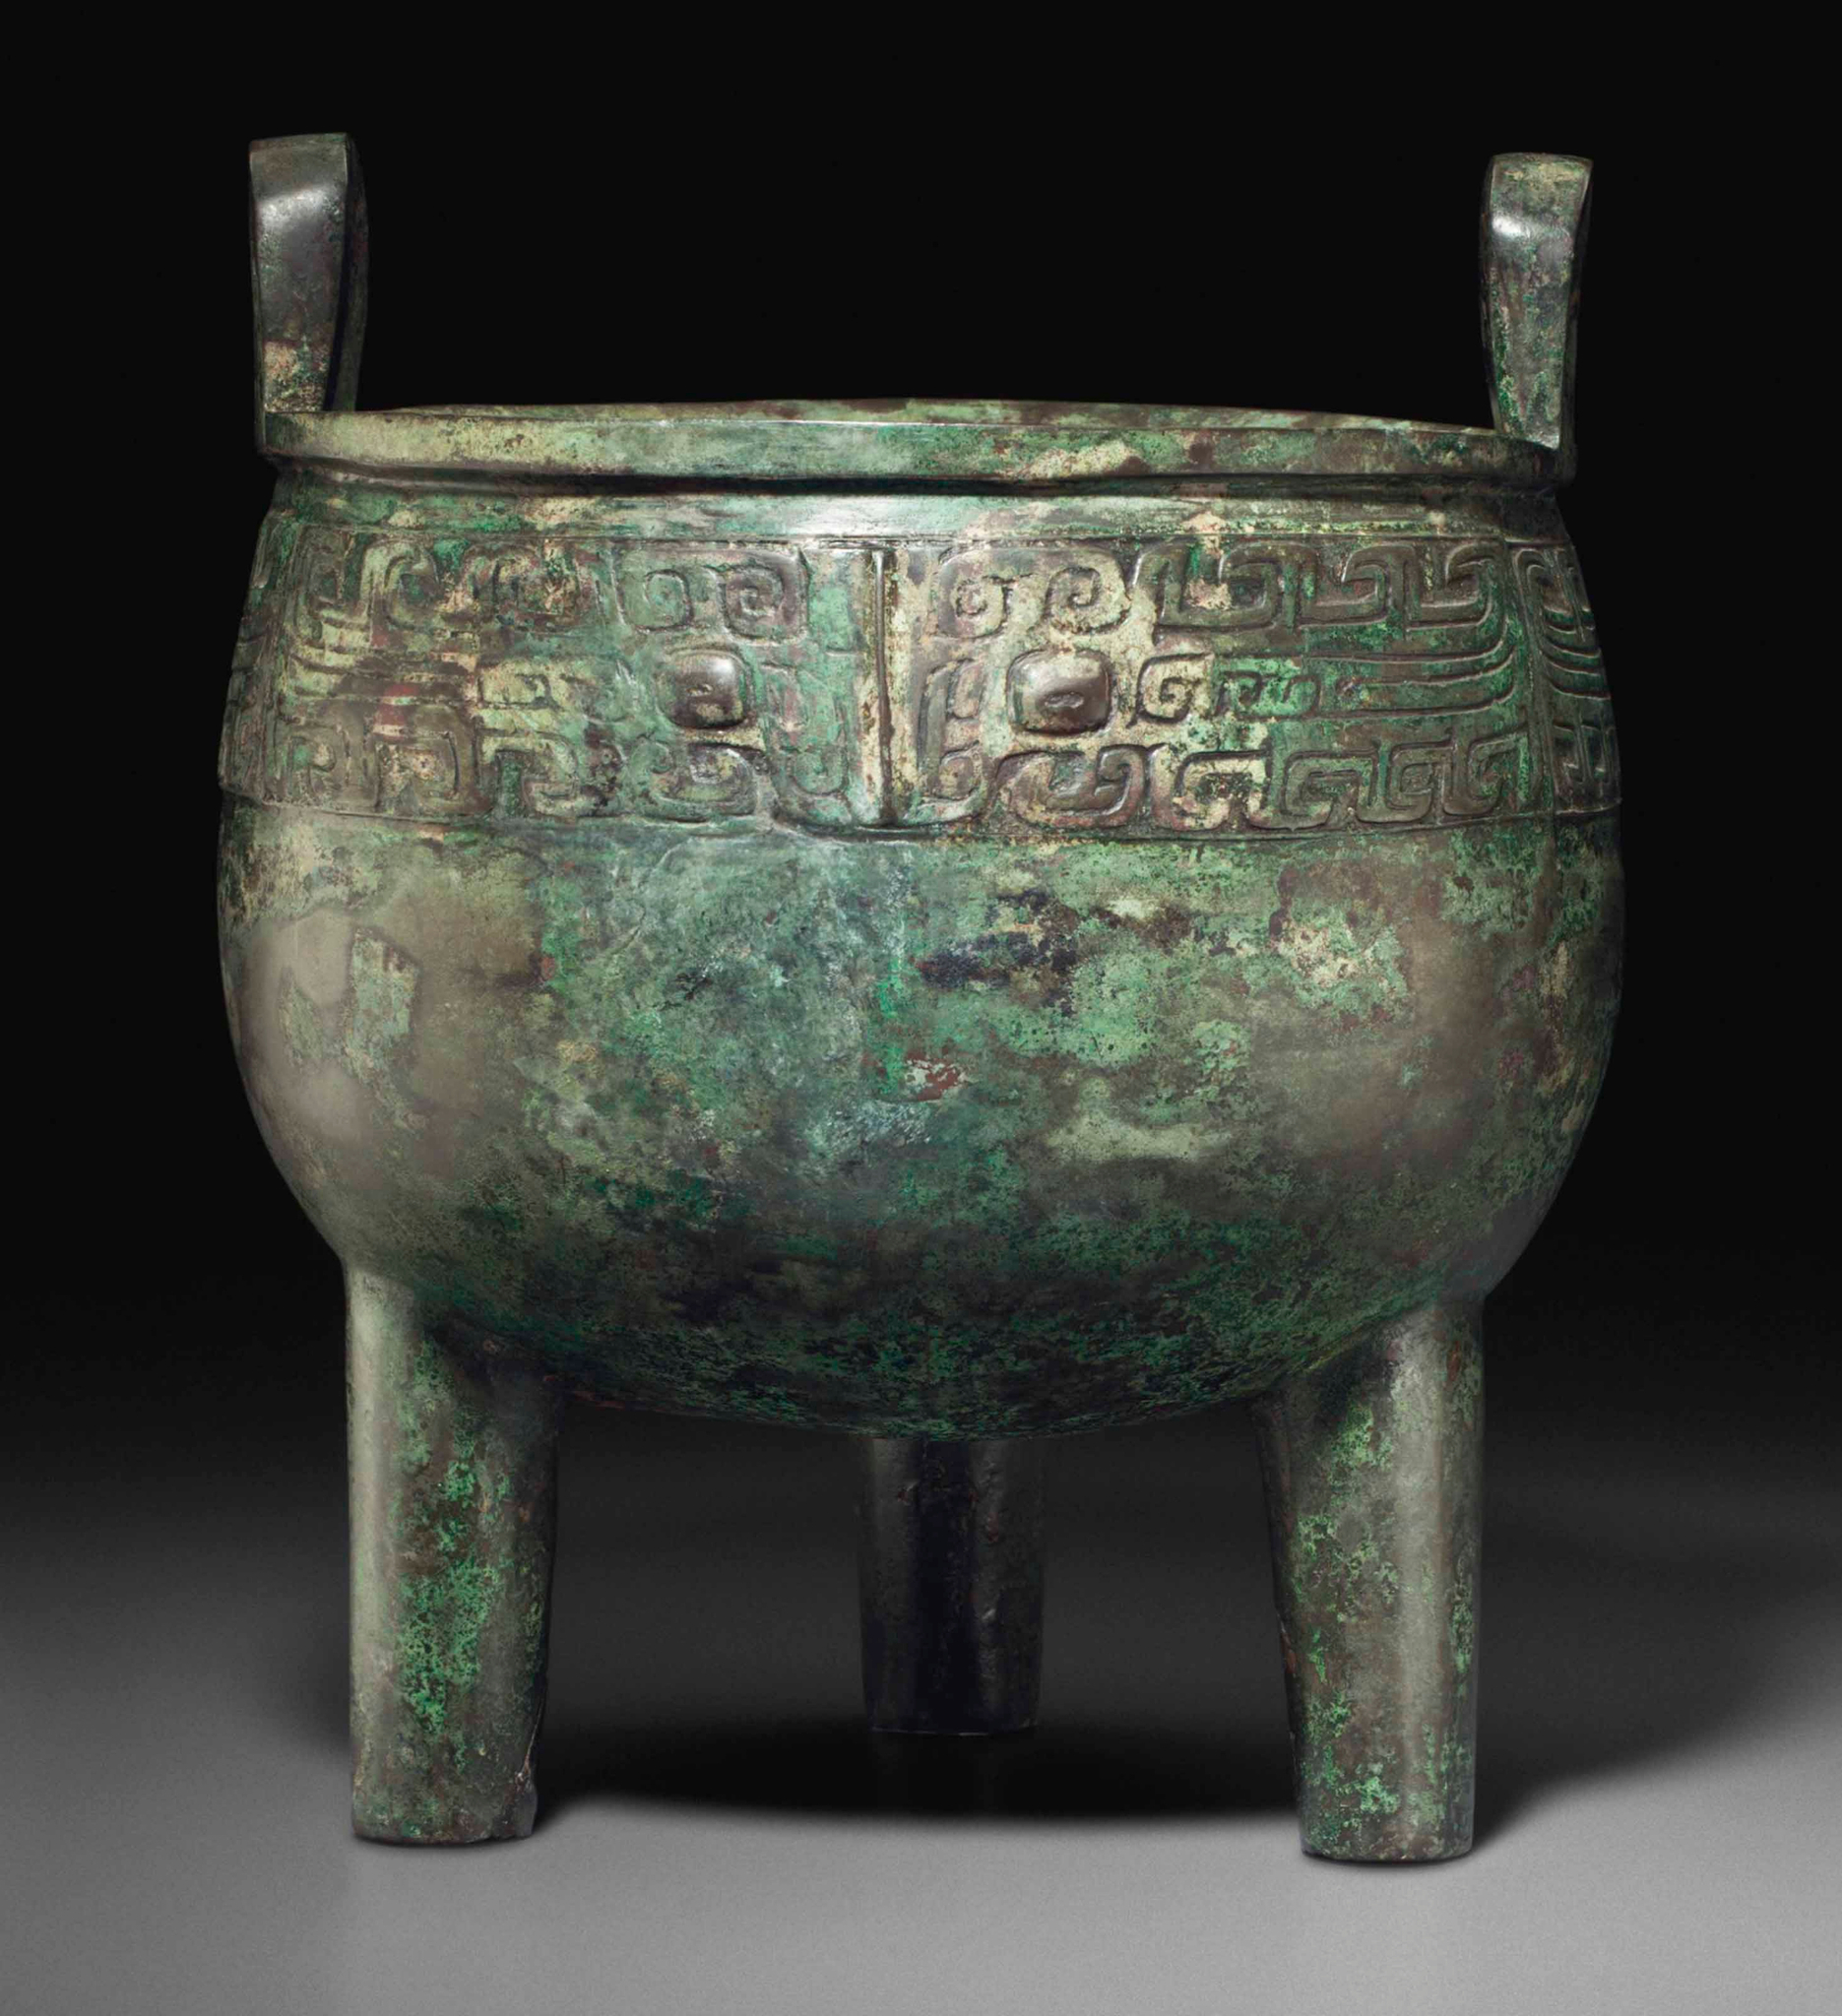 A large bronze ritual tripod food vessel, Ding, Late Shang-Western Zhou dynasty, 11th century BC